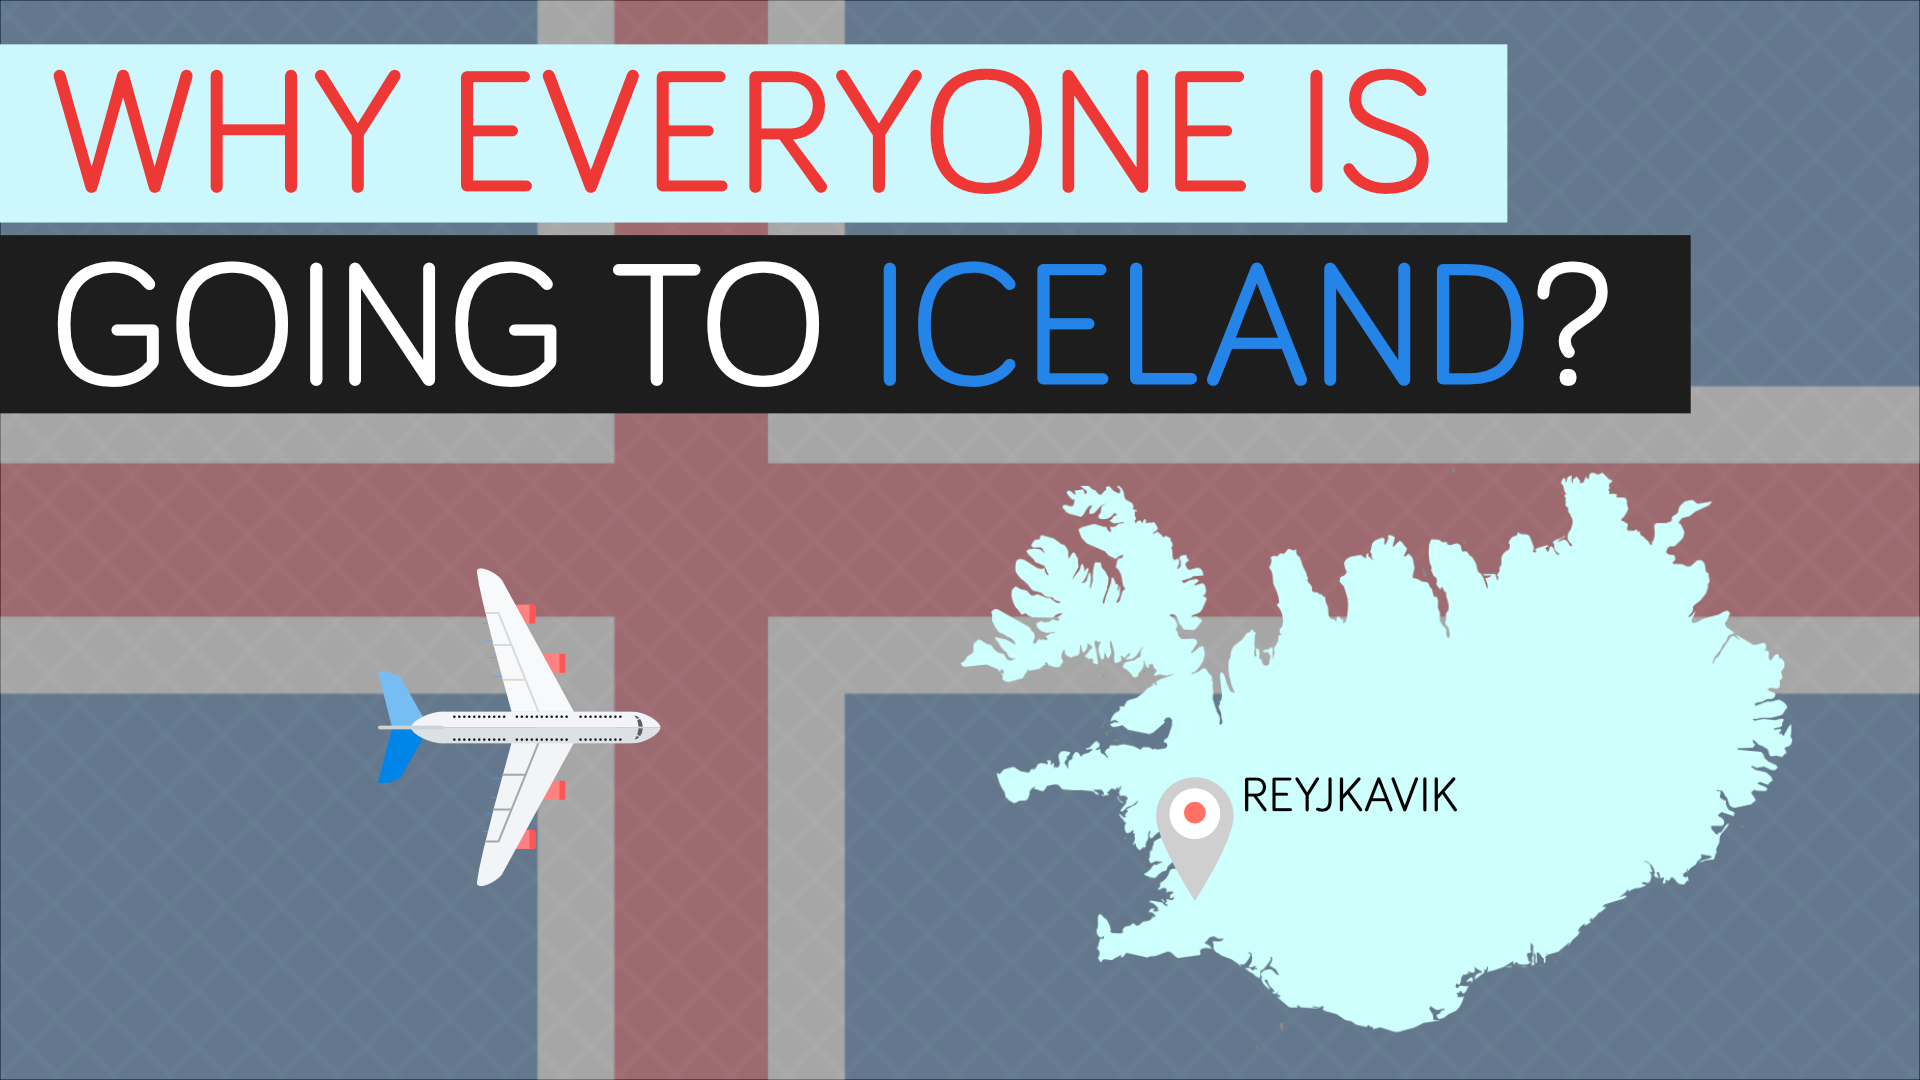 why everyone going to iceland.jpg